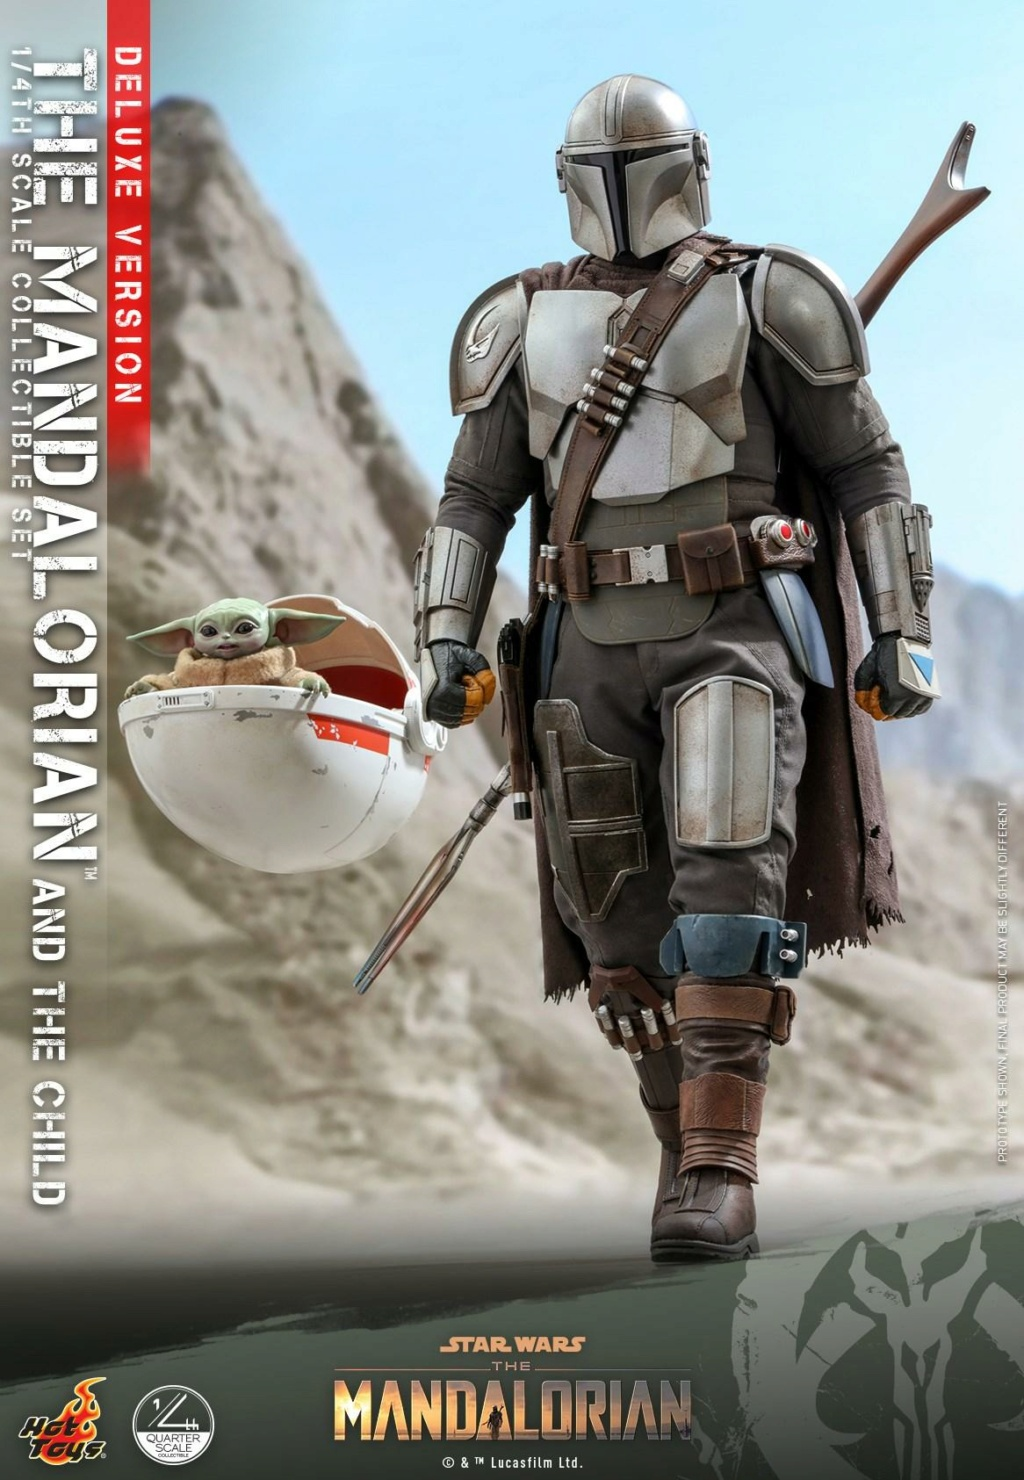 The Mandalorian & The Child Set (Deluxe) 1/4th - Hot Toys 1723